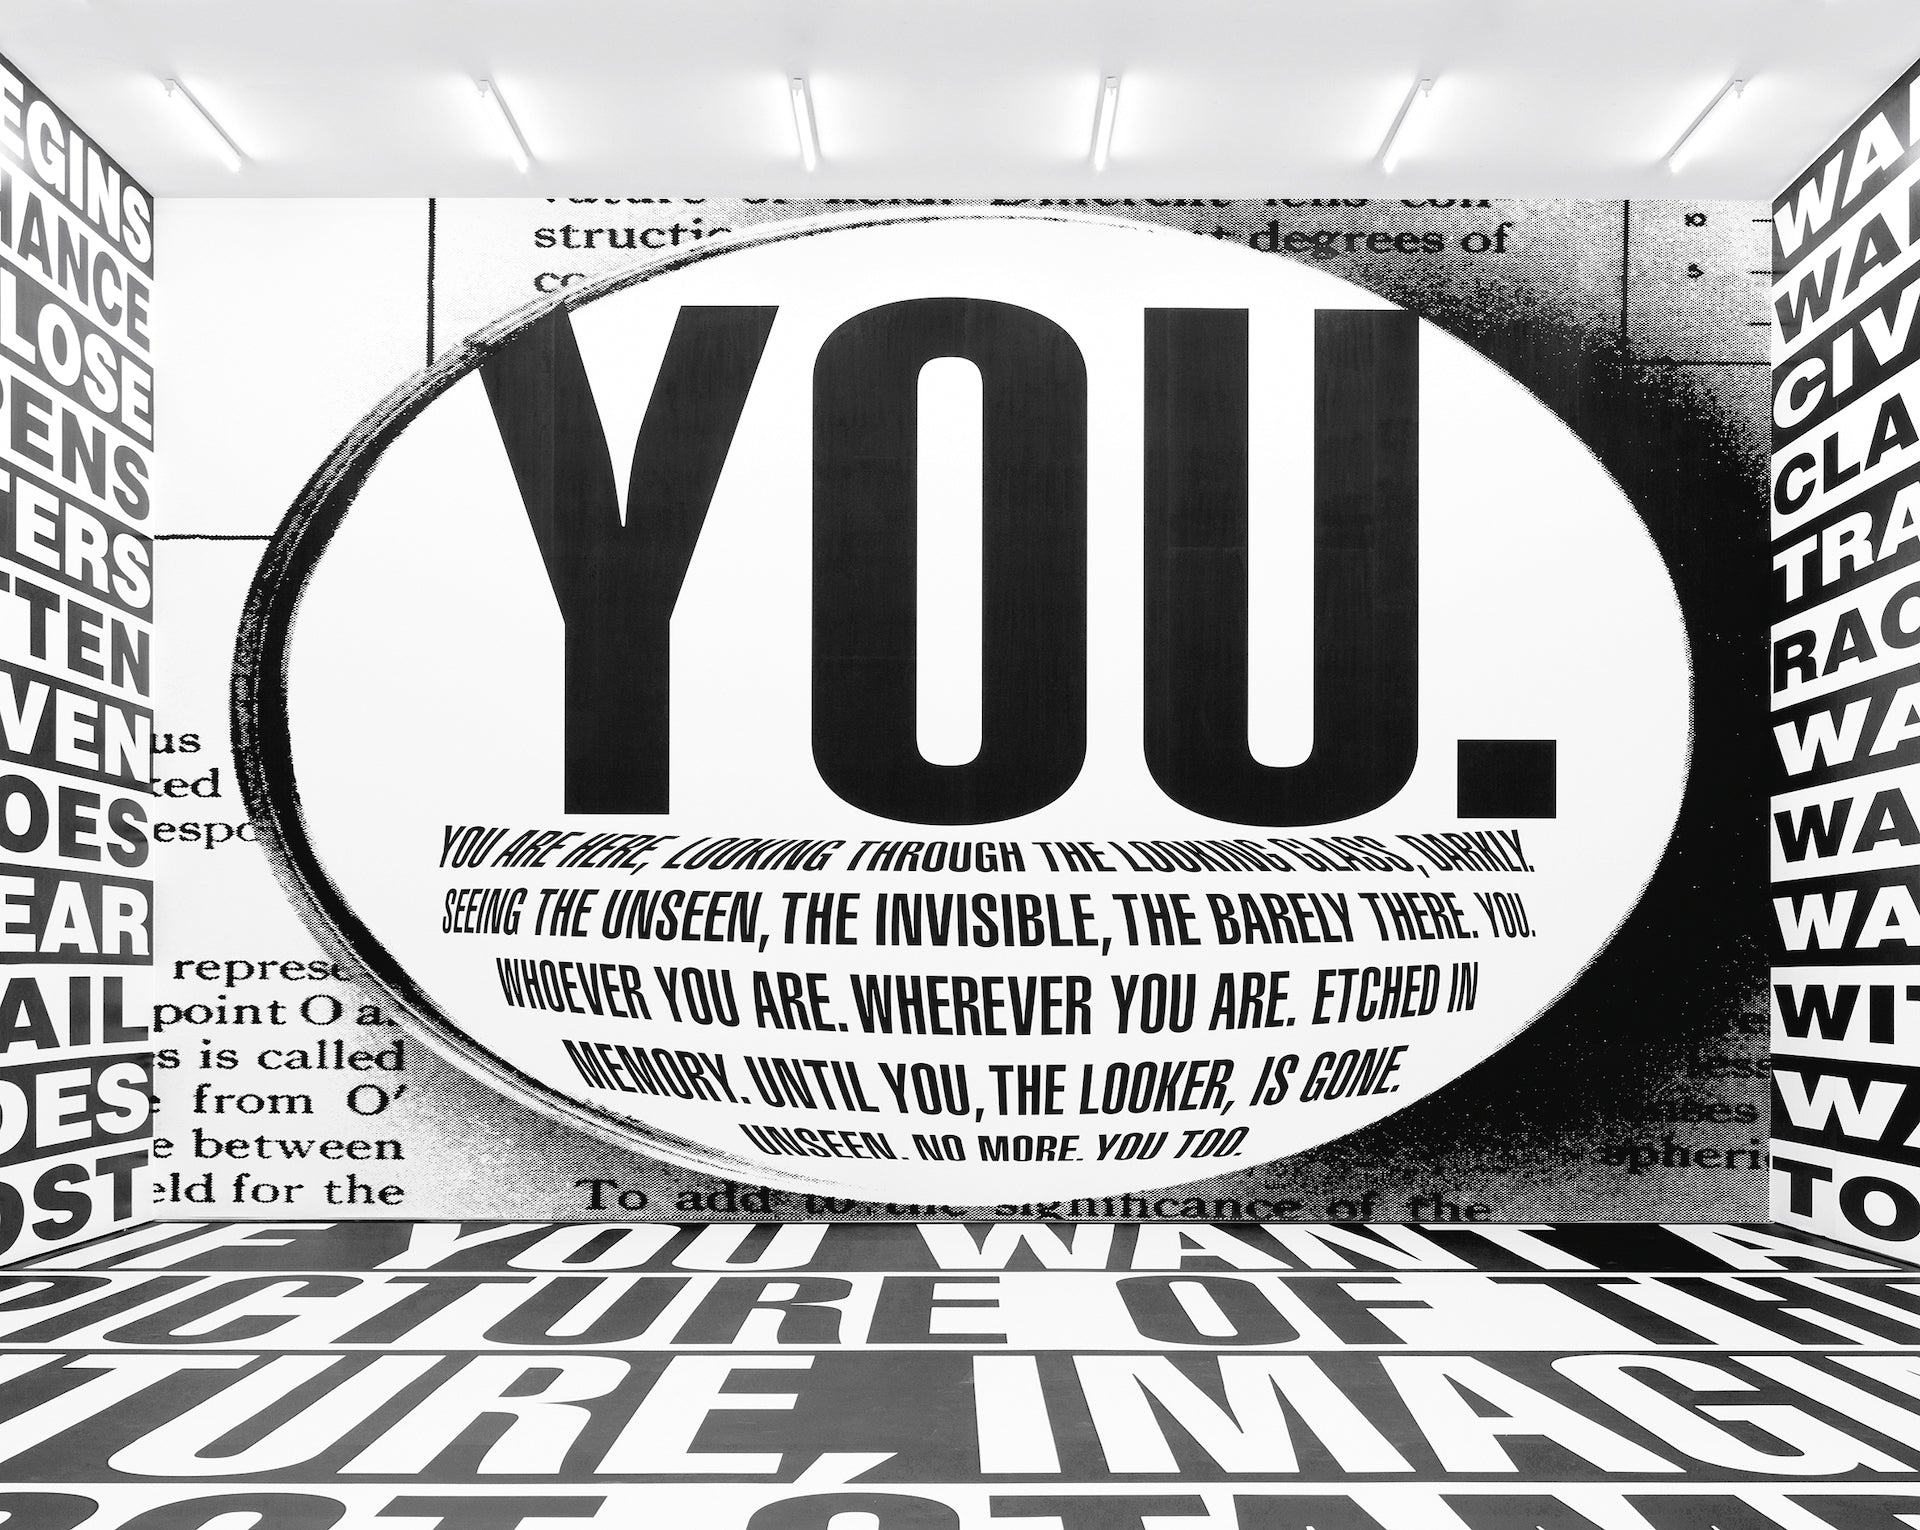 Untitled (Forever) by Barbara Kruger, 2017. Installation view, Sprüth Magers, Berlin, 2017–18. Amorepacific Museum of Art (APMA), Seoul. Photo by Timo Ohler; courtesy of Sprüth Magers